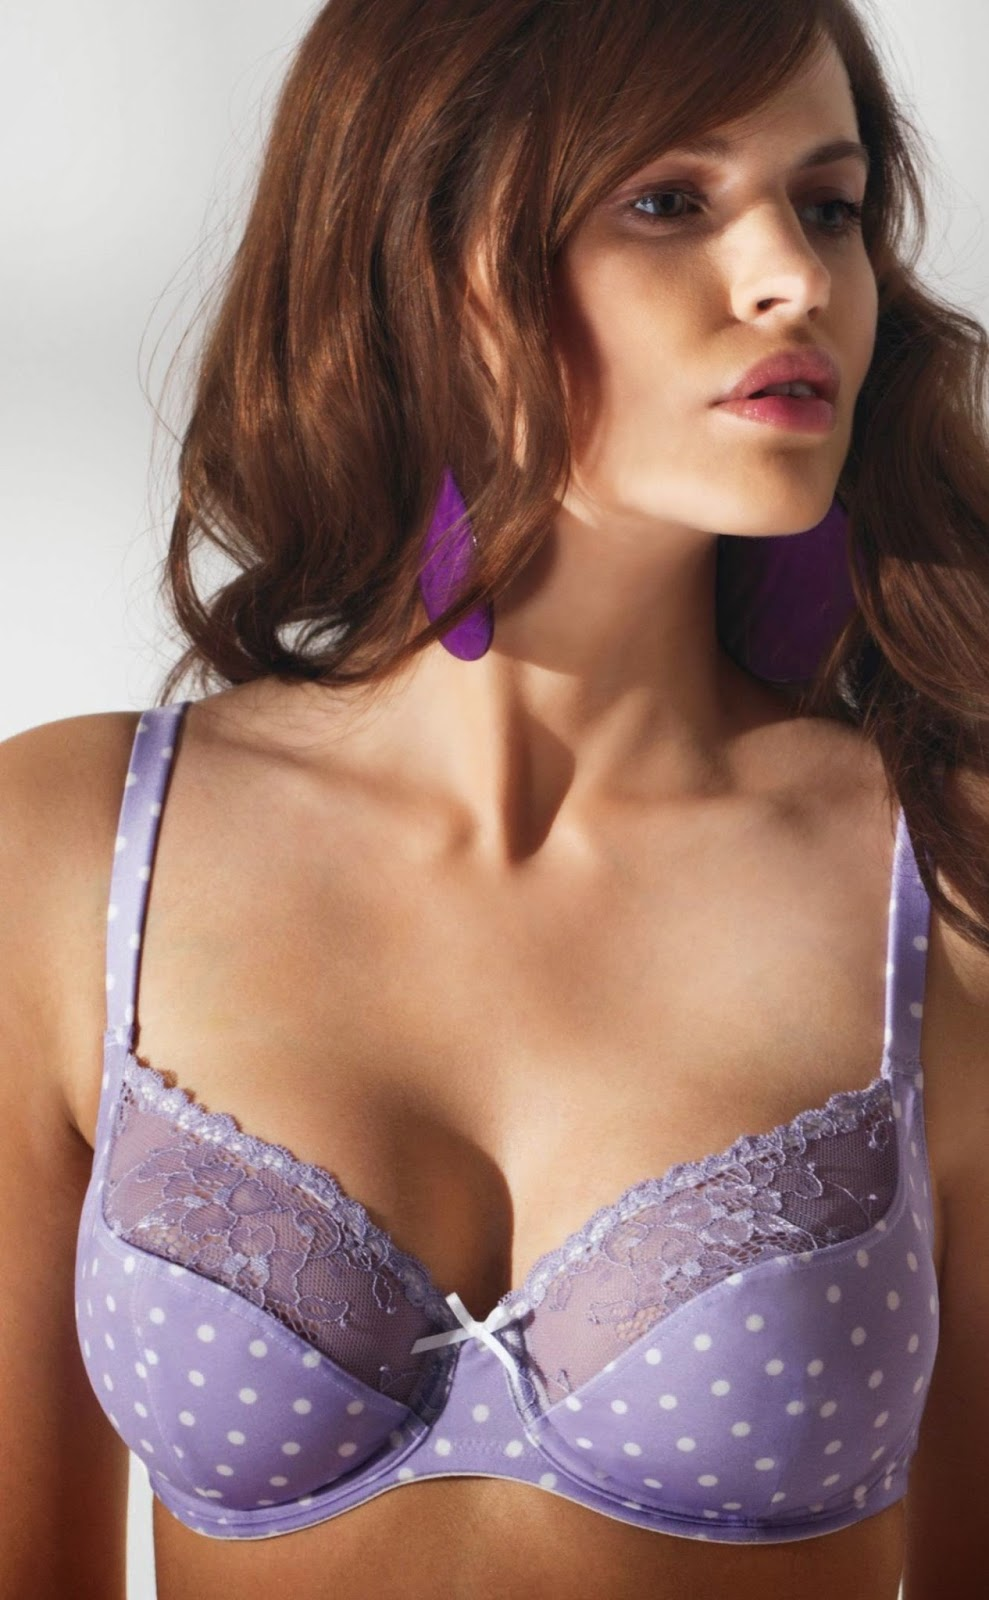 The Lingerie Store USA serves women and their intimate apparel needs in an environment which is warm and friendly both in store and online. Our knowledgeable staff specializes in bra fitting and we stock a wide selection of bra styles and sizes including difficult and hard-to-find band and cup sizes.